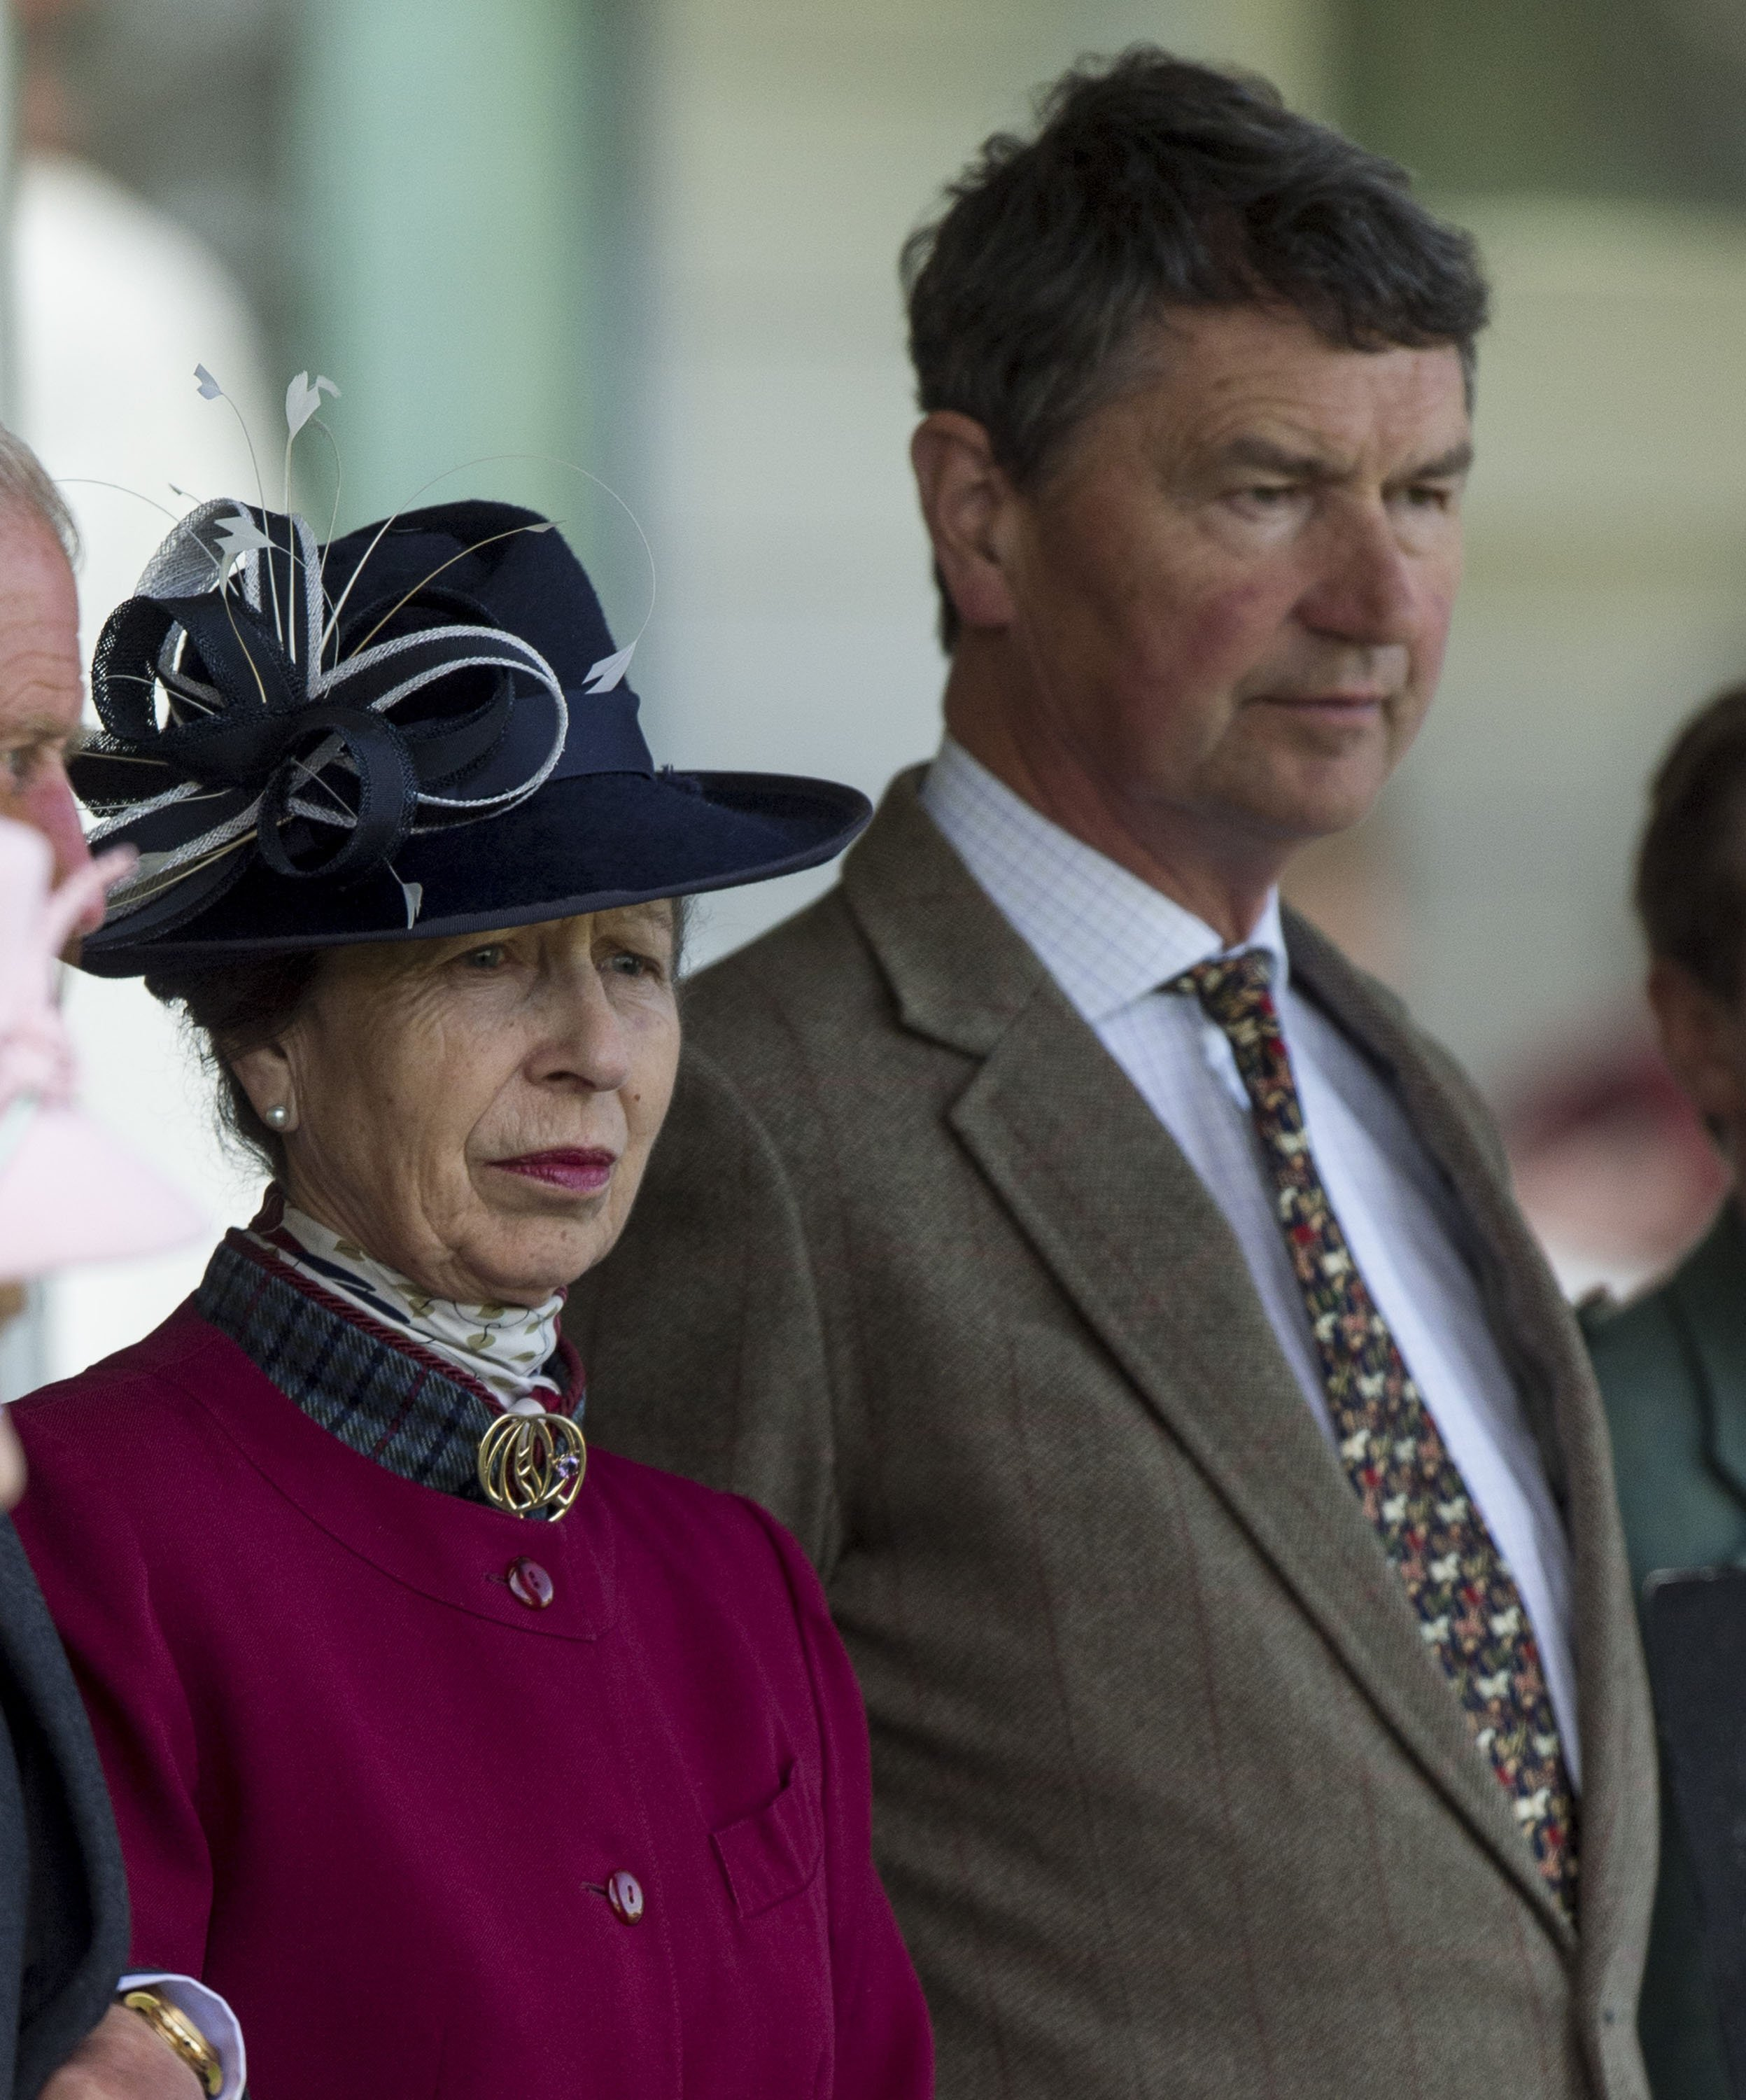 Princess Anne and Timothy Laurence attend the 2017 Braemar Highland Gathering on September 2, 2017, in Braemar, Scotland.   Source: Getty Images.